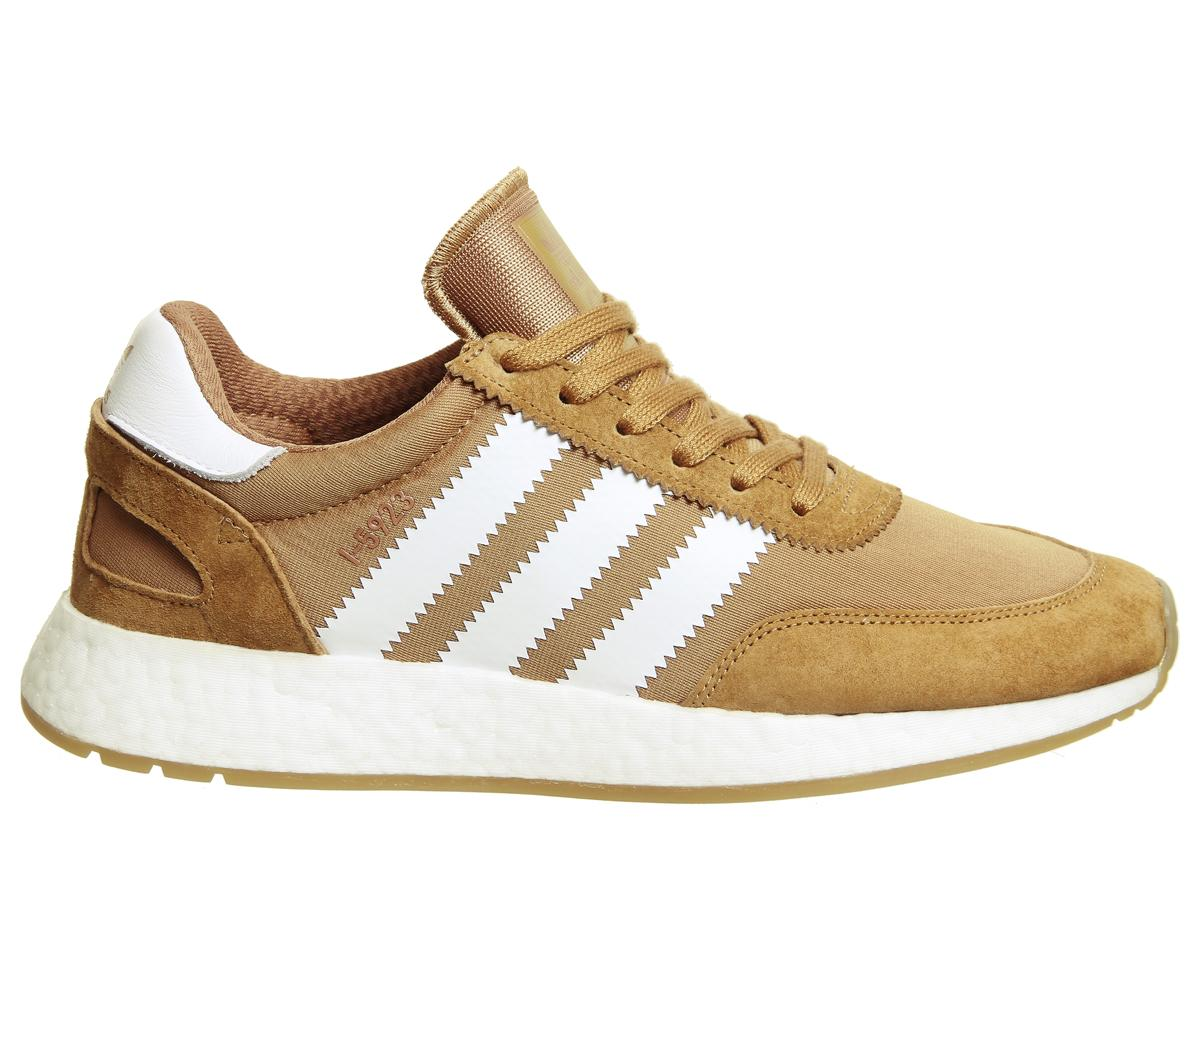 adidas Suede I-5923 Trainers